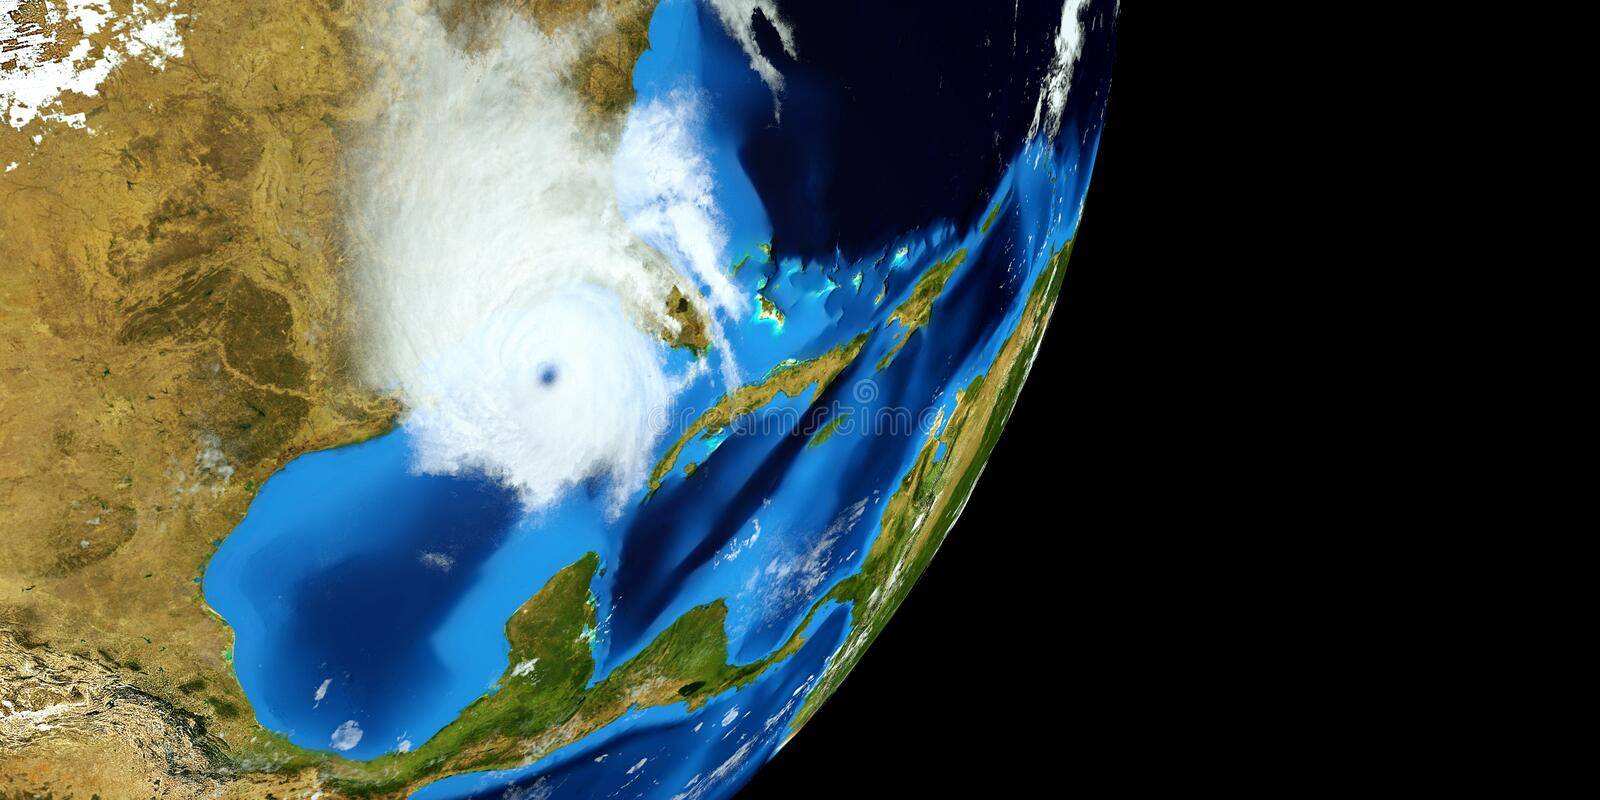 Extremely detailed and realistic high resolution 3D illustration of a Hurricane. Shot from Space. Elements of this image are furni. Extremely detailed and royalty free stock image